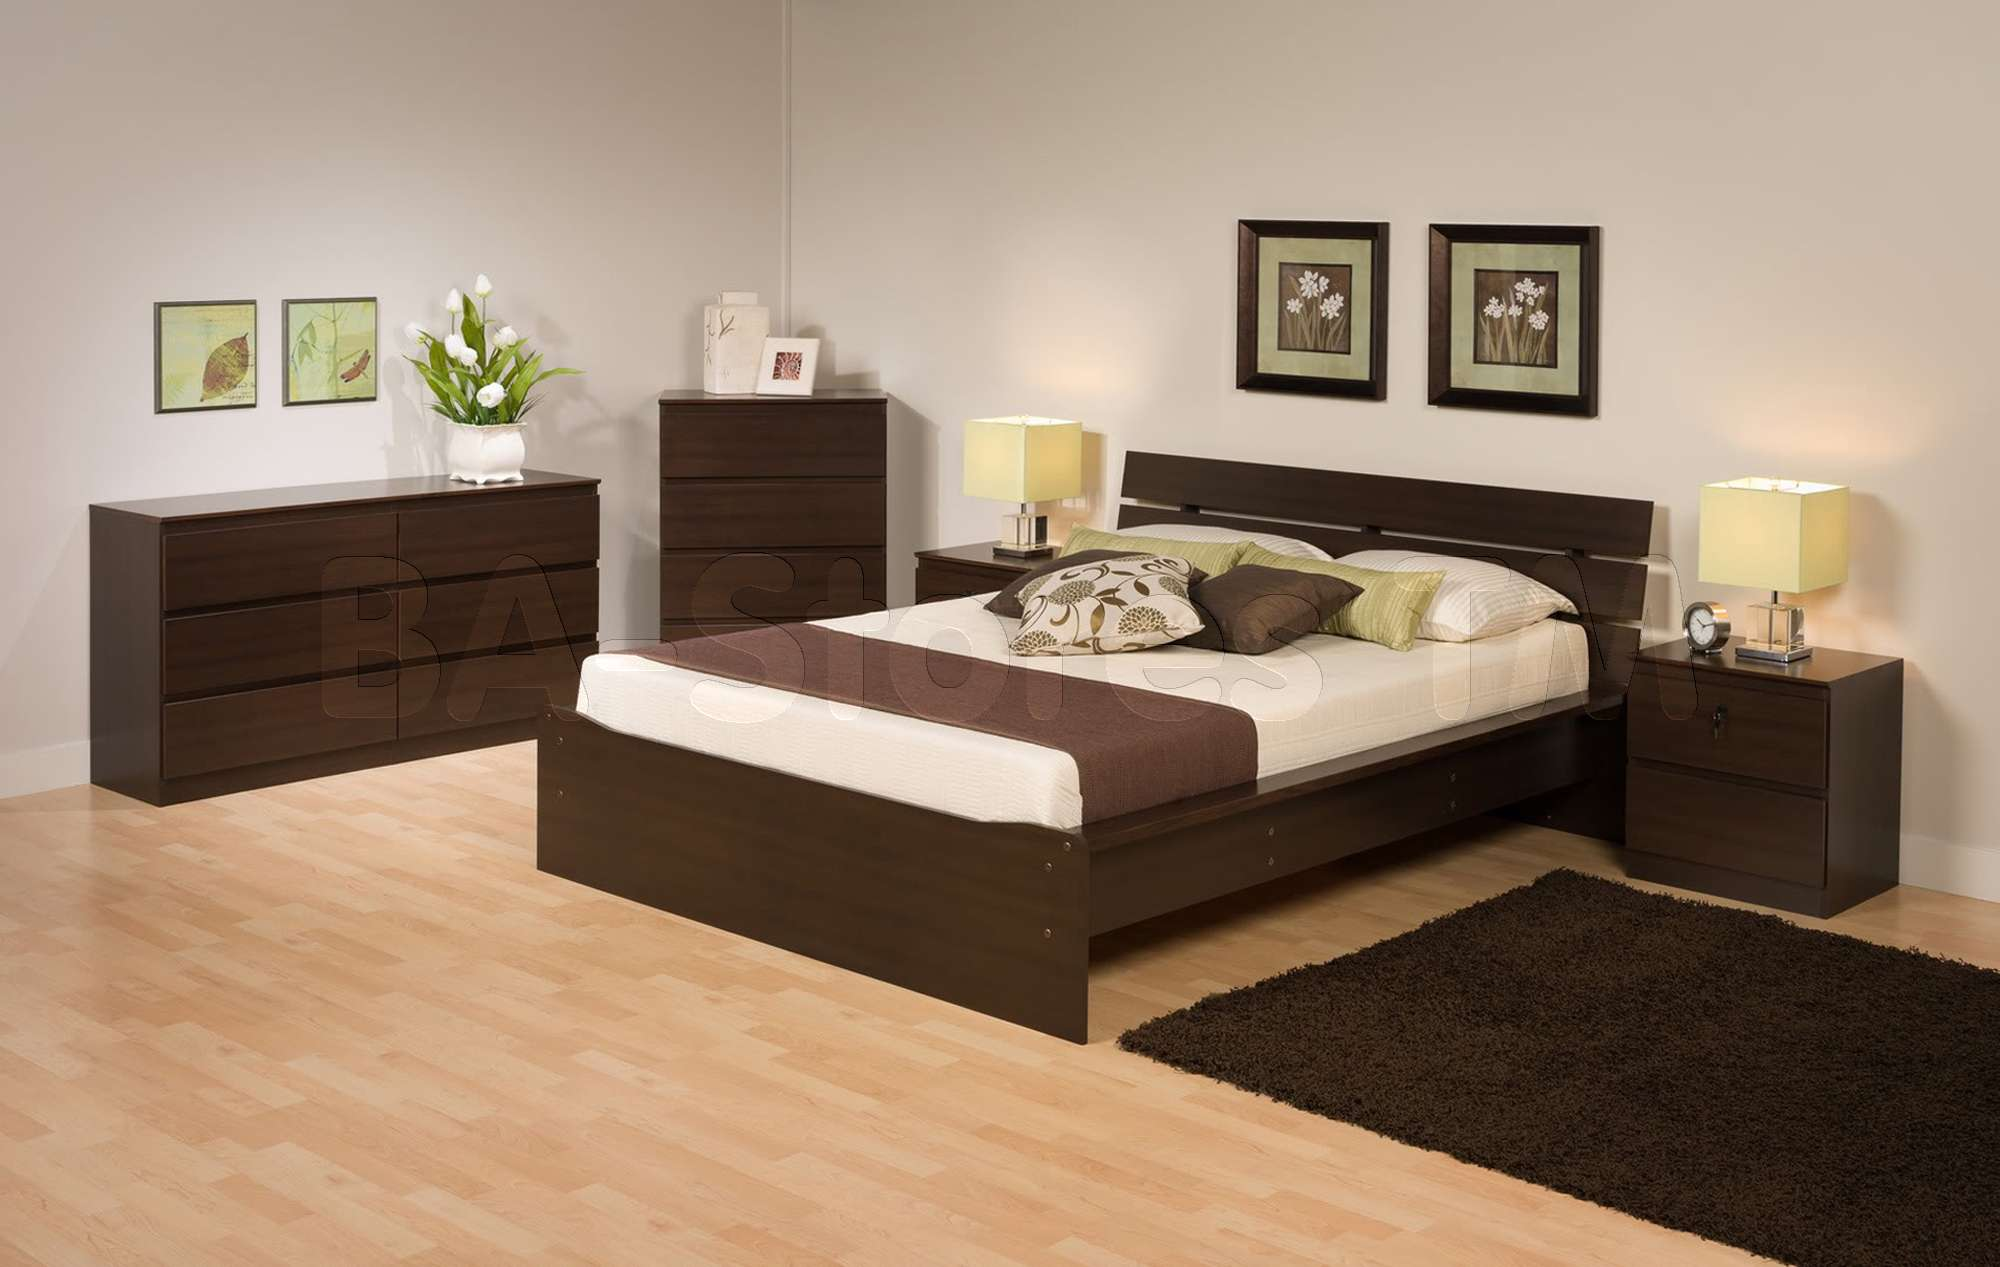 Double Bed Designs New Storage Amazing